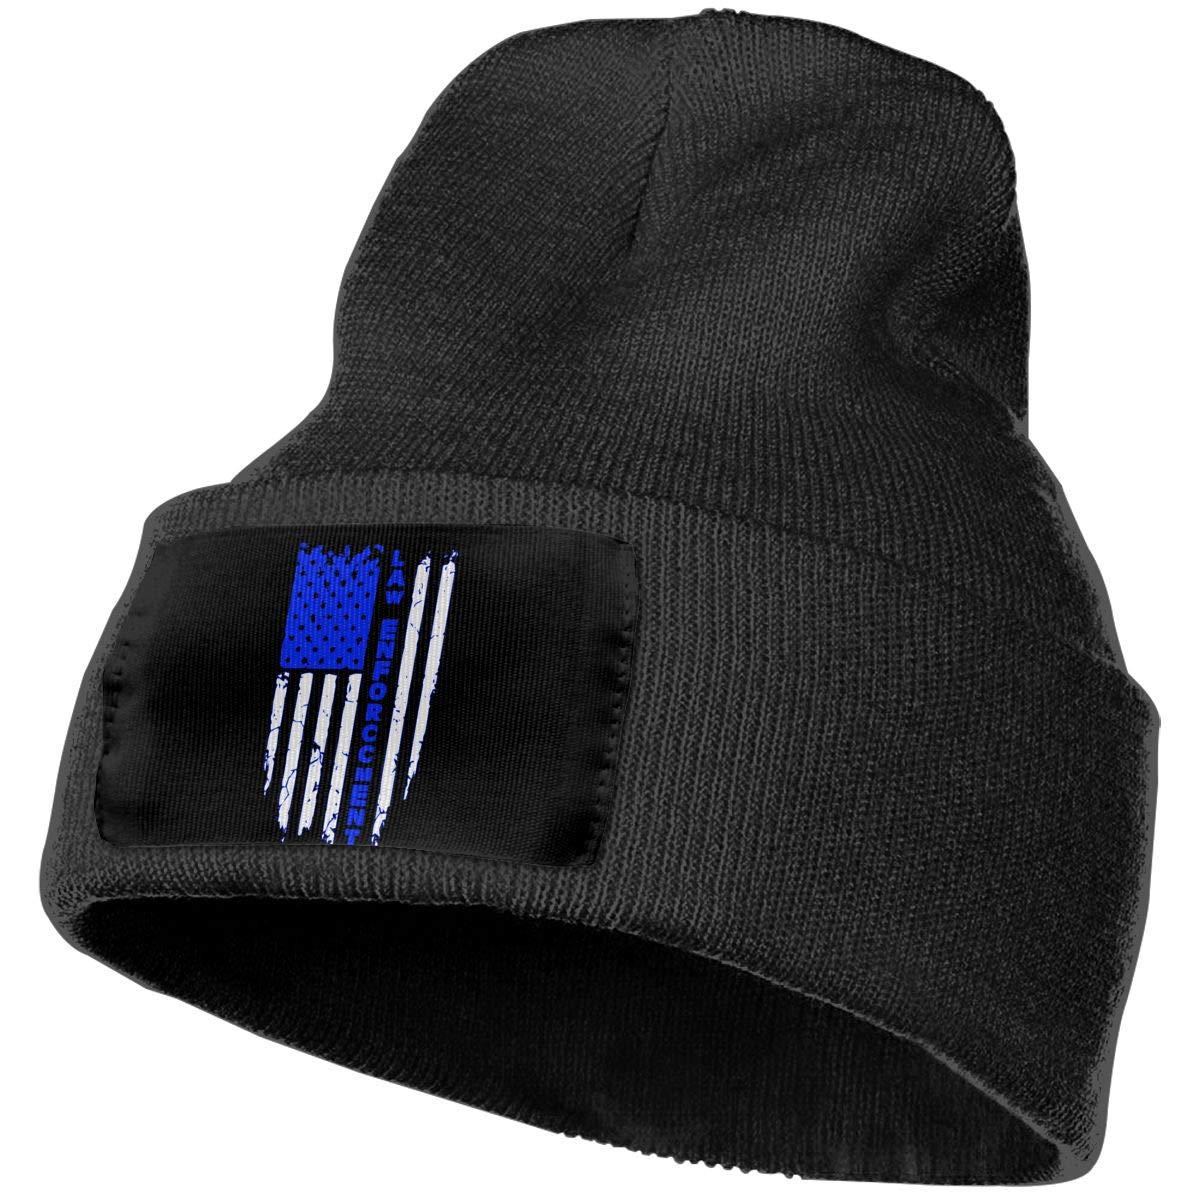 Law Enforcement Fashion Skull Beanie WHOO93@Y Mens and Womens 100/% Acrylic Knitted Hat Cap